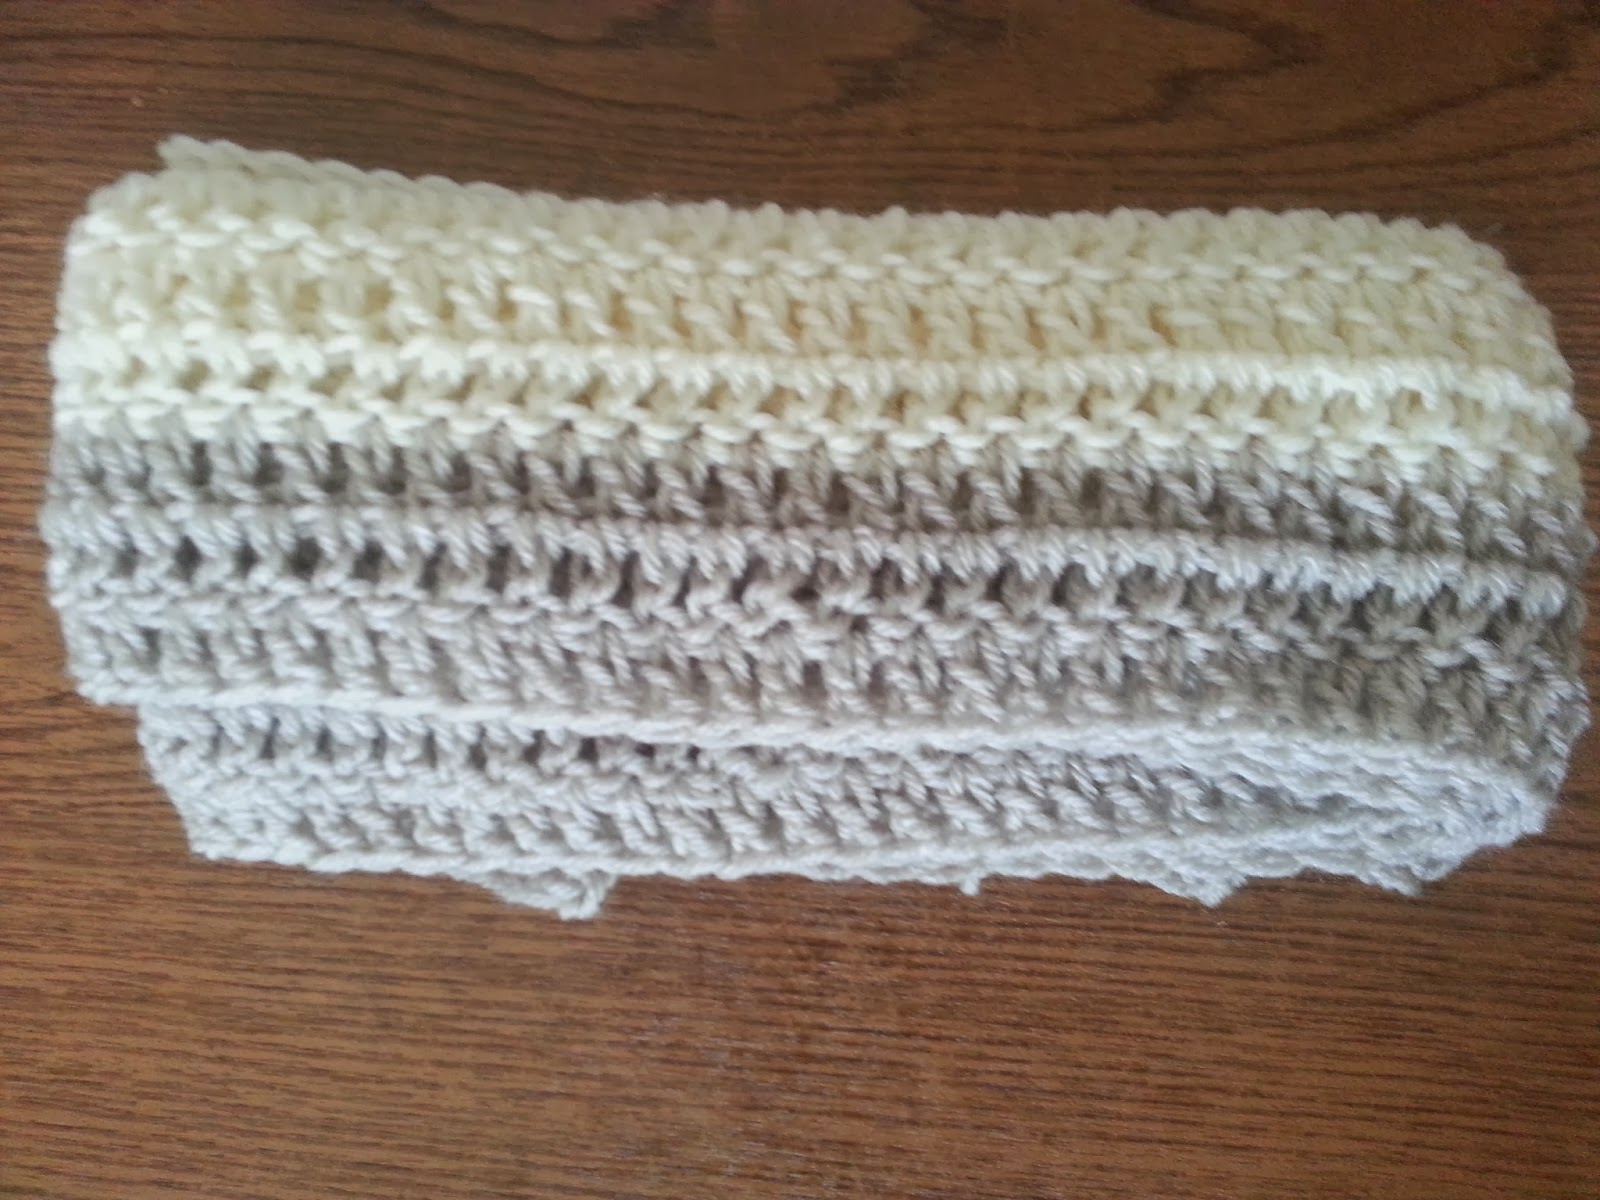 From SSL Mom - How to Crochet Step 5: Double Crochet ...